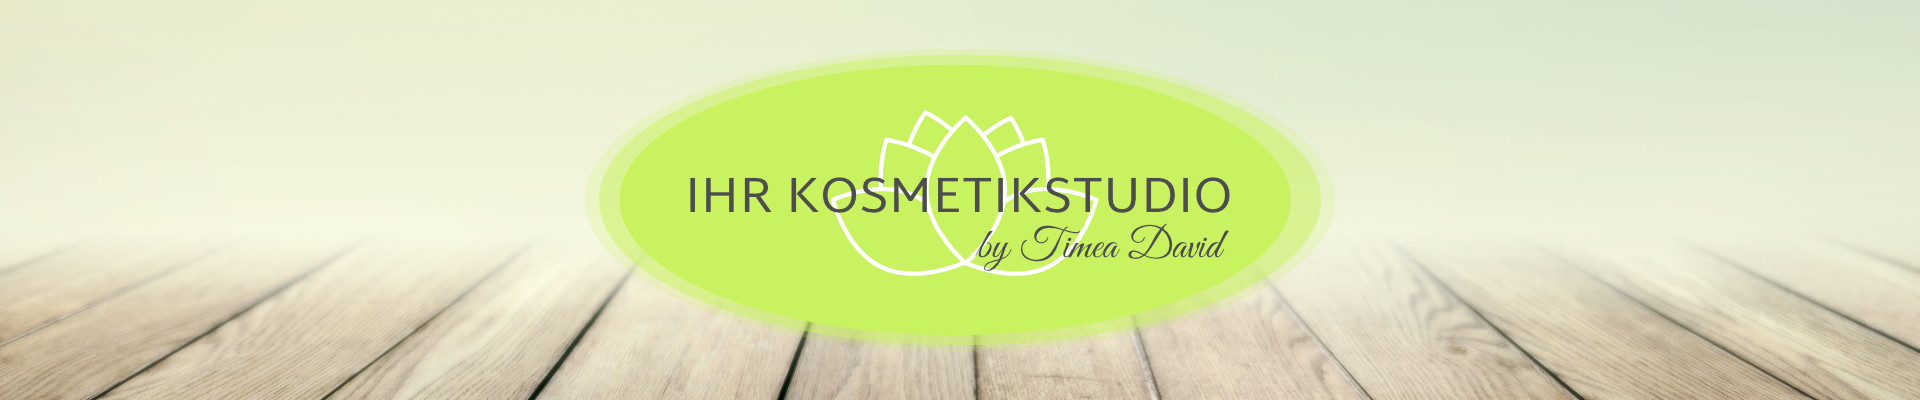 Ihr Kosmetikstudio by Timea David in Kaarst